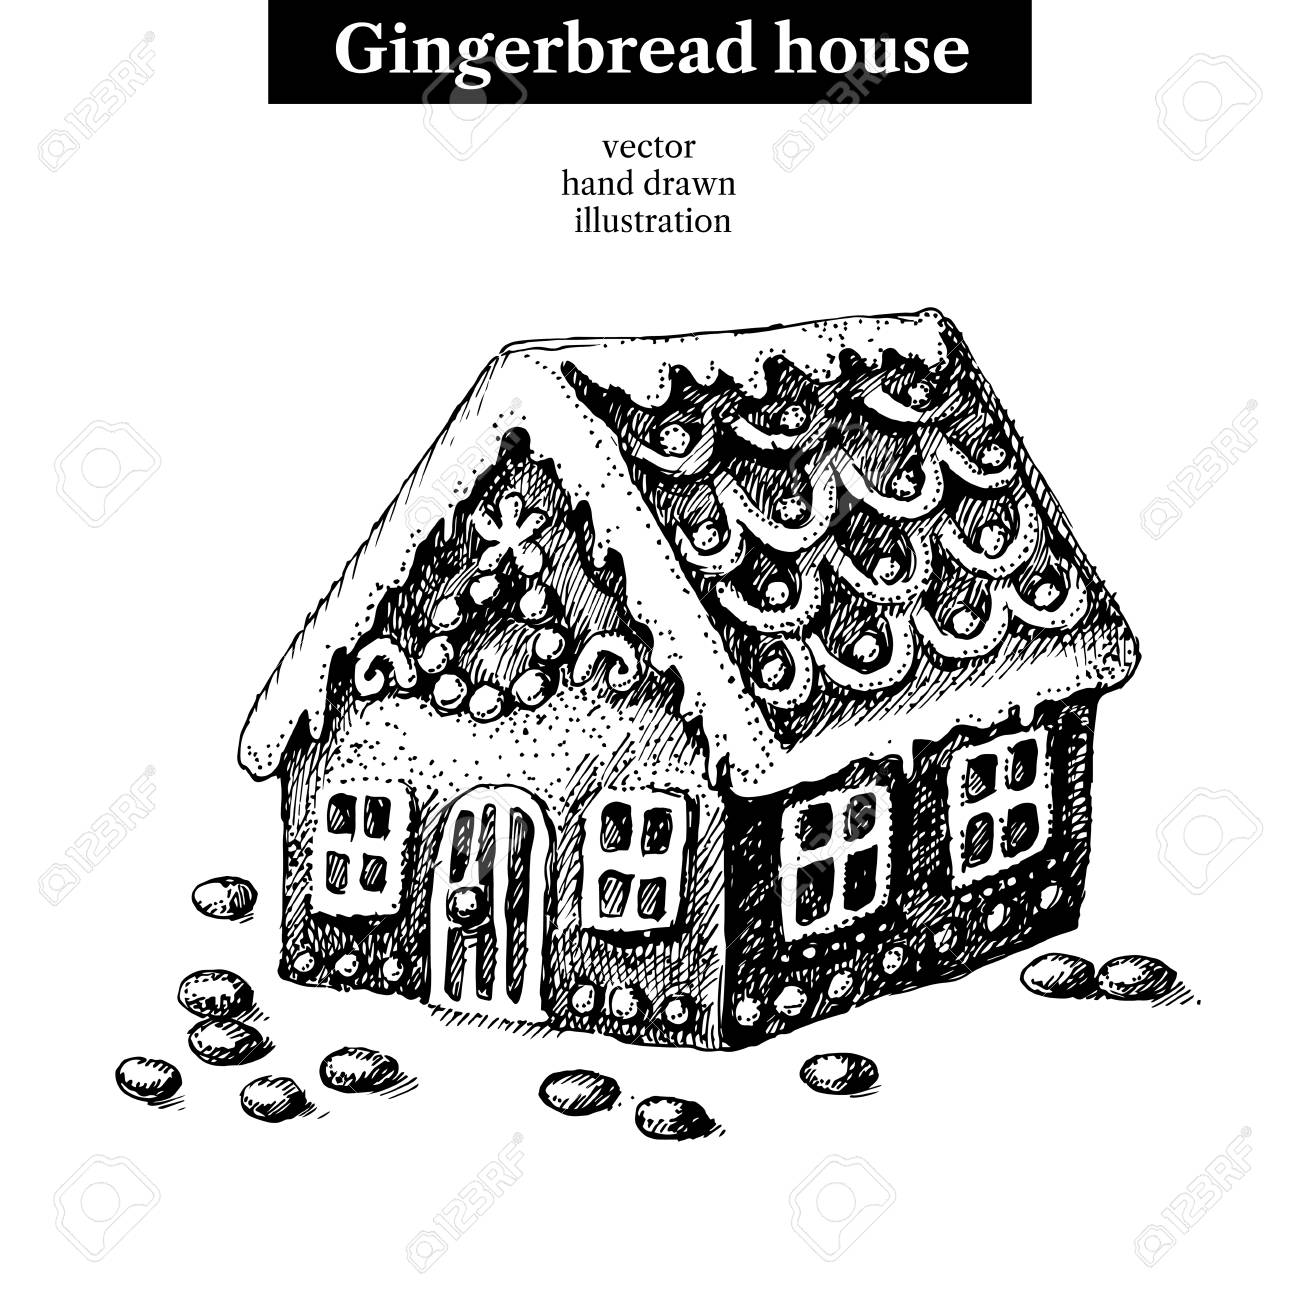 Christmas Gingerbread House Drawing.Hand Drawn Sketch Merry Christmas And Happy New Year Sweet Gingerbread